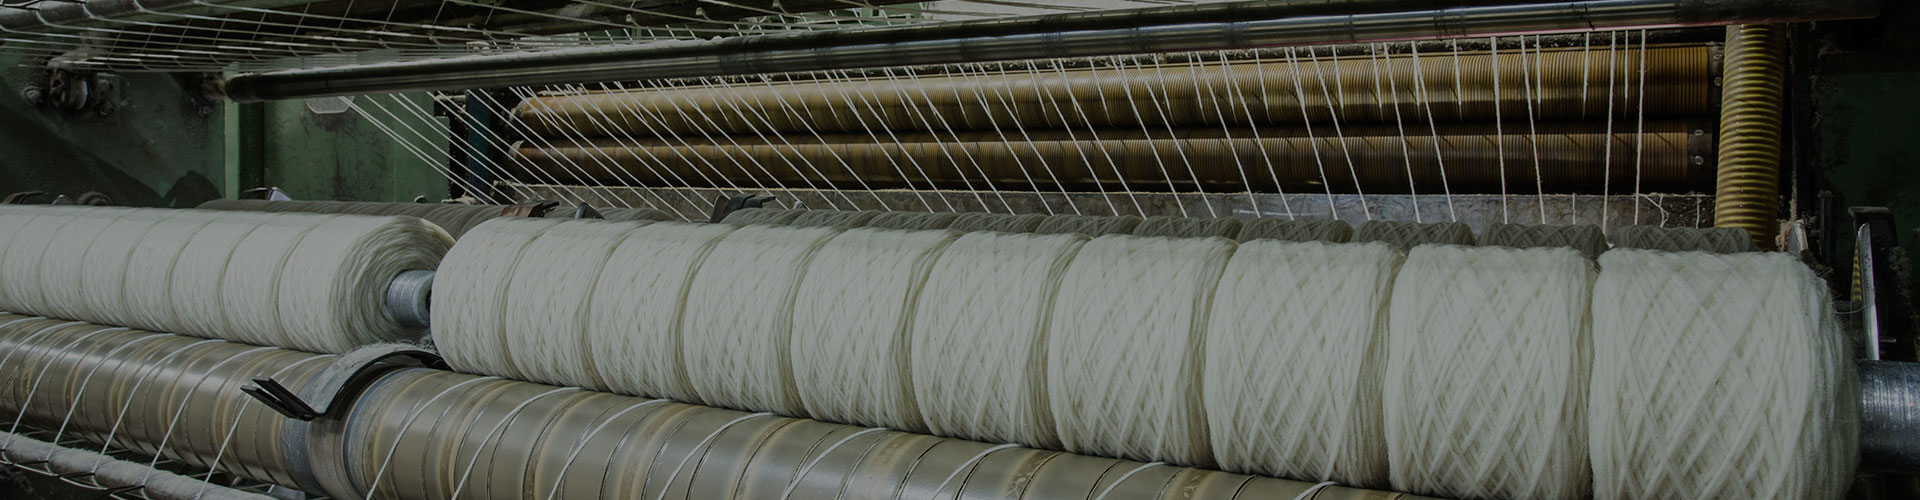 WE ARE SPECIALIST IN THE PRODUCTION OF WOOLLEN YARNS IN WOOL, AND ITS BLENDS WITH OTHER FIBERS.